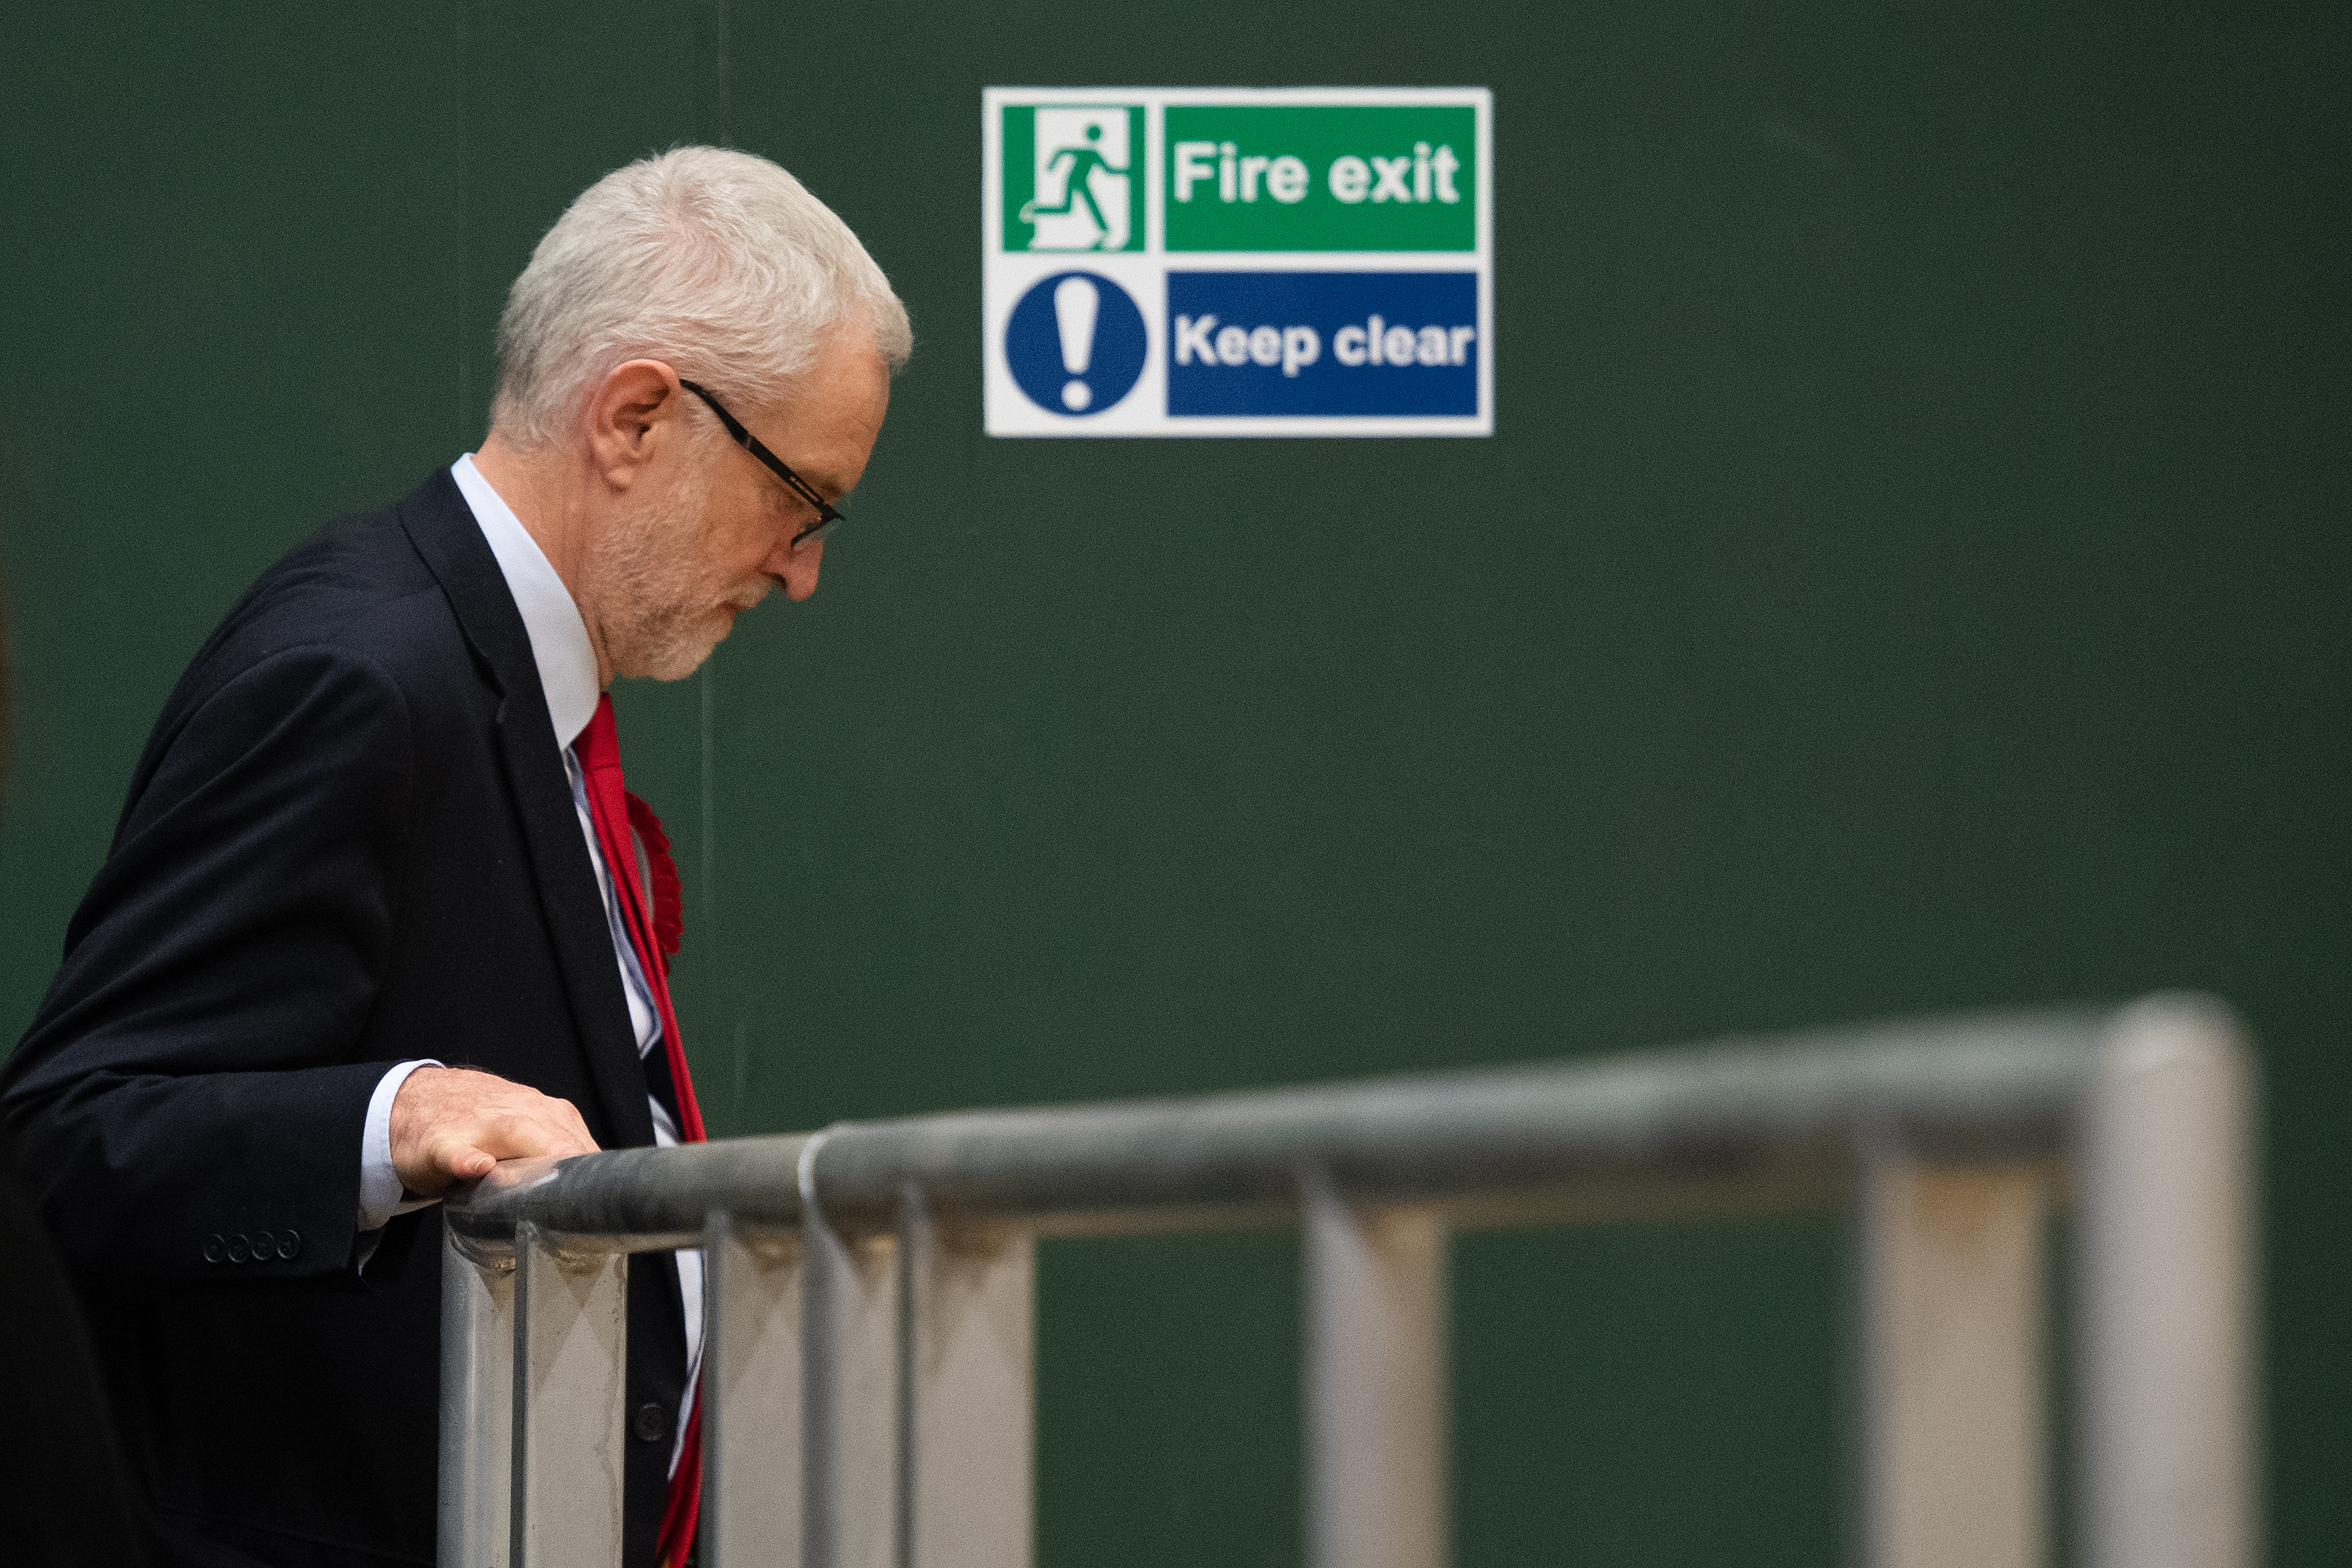 LONDON, ENGLAND - DECEMBER 13: Labour Party leader Jeremy Corbyn leaves the stage at Sobell leisure centre after retaining his parliamentary seat on December 13, 2019 in London, England. Labour leader Jeremy Corbyn has held the Islington North seat since 1983. The current Conservative Prime Minister Boris Johnson called the first UK winter election for nearly a century in an attempt to gain a working majority to break the parliamentary deadlock over Brexit. The election results from across the country are being counted overnight and an overall result is expected in the early hours of Friday morning. (Photo by Leon Neal/Getty Images)